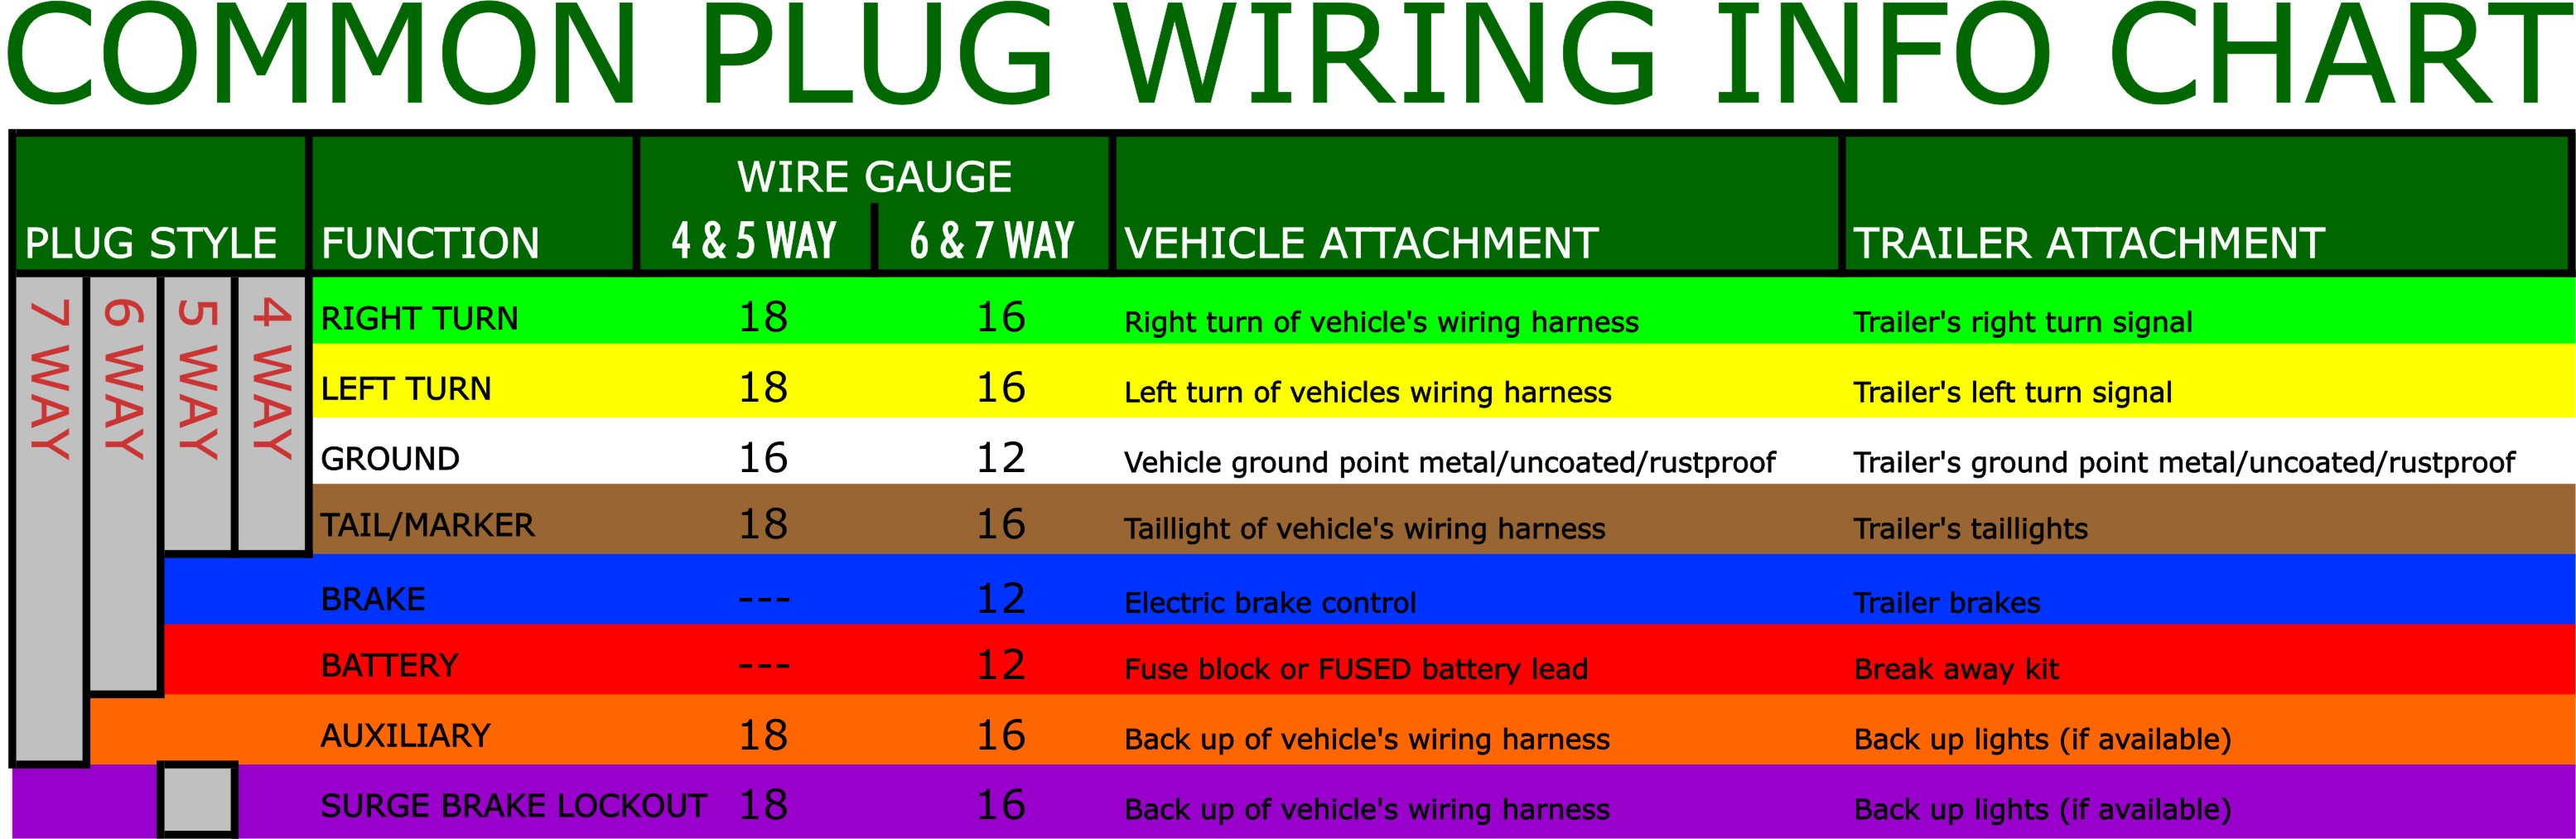 Pop Up Camper Trailer 4 Wire Connector Diagram - Data Wiring Diagram - 6 Way Trailer Plug Wiring Diagram